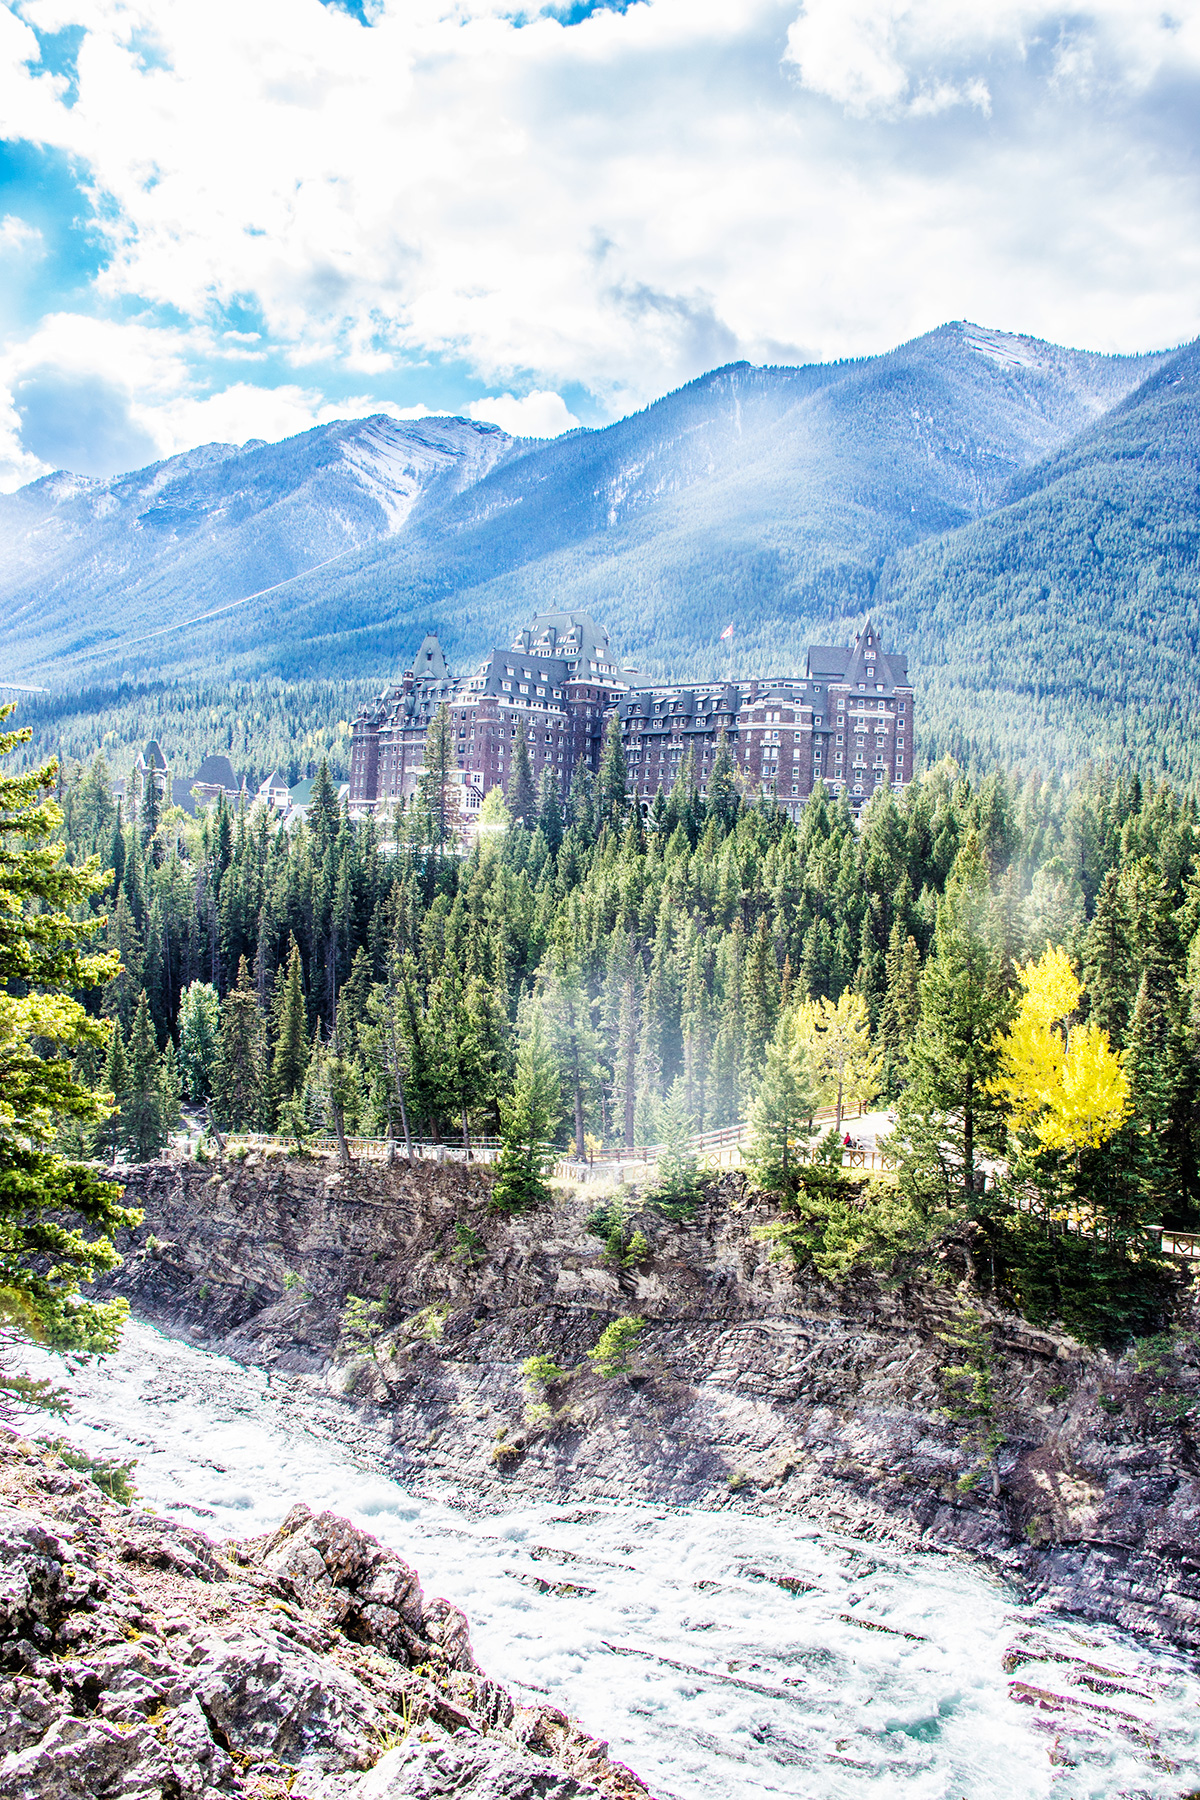 Fairmont-Banff-Springs-Resort